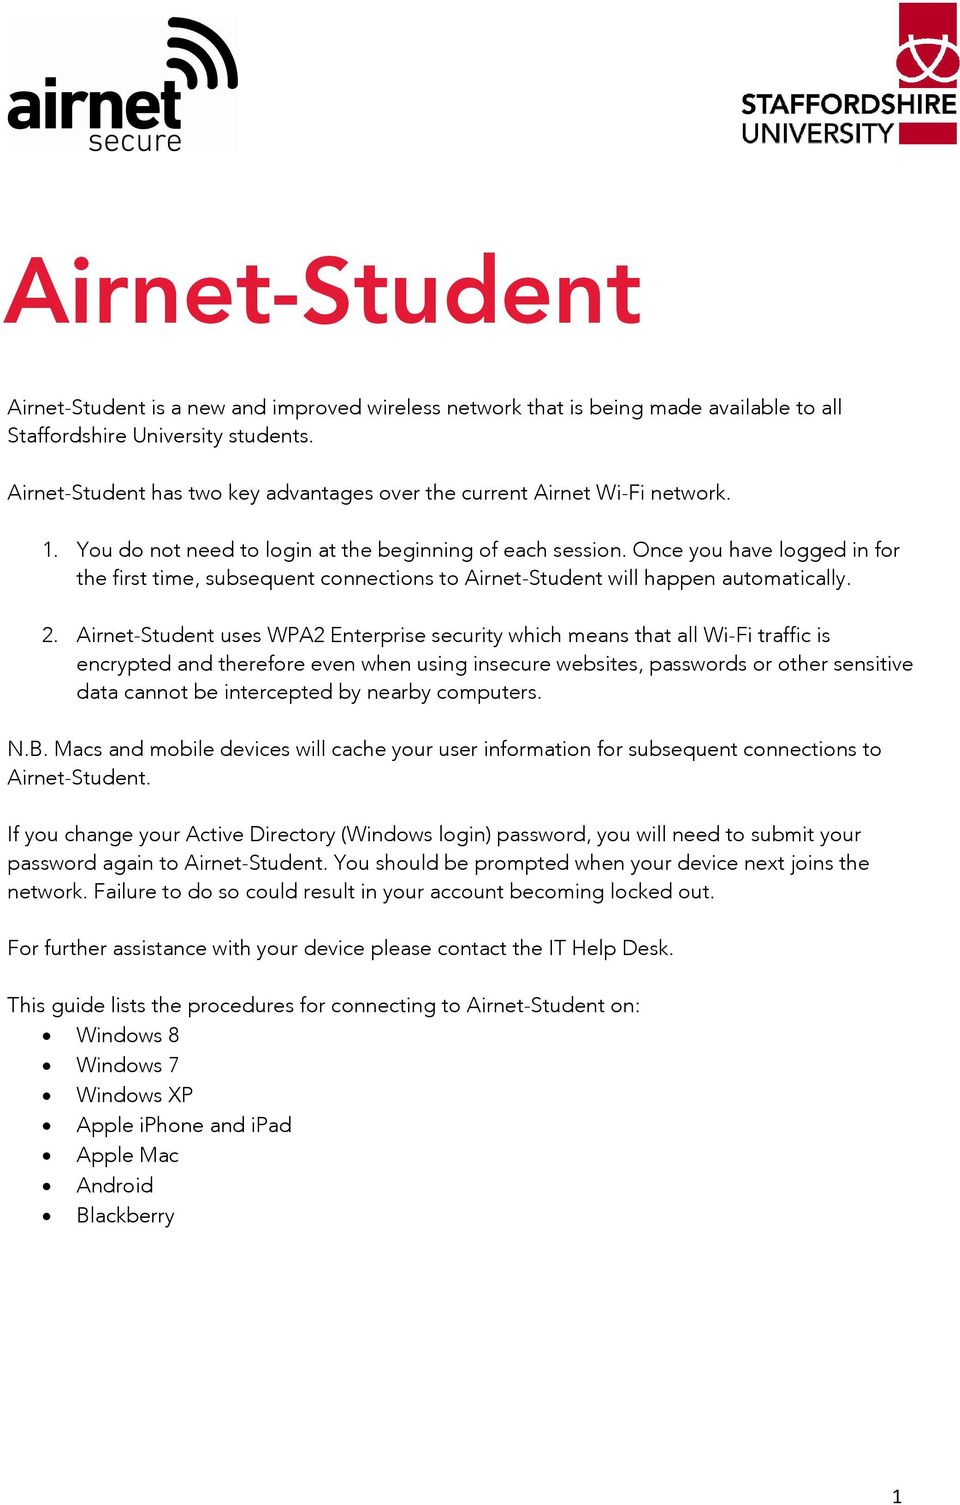 Once you have logged in for the first time, subsequent connections to Airnet-Student will happen automatically. 2.